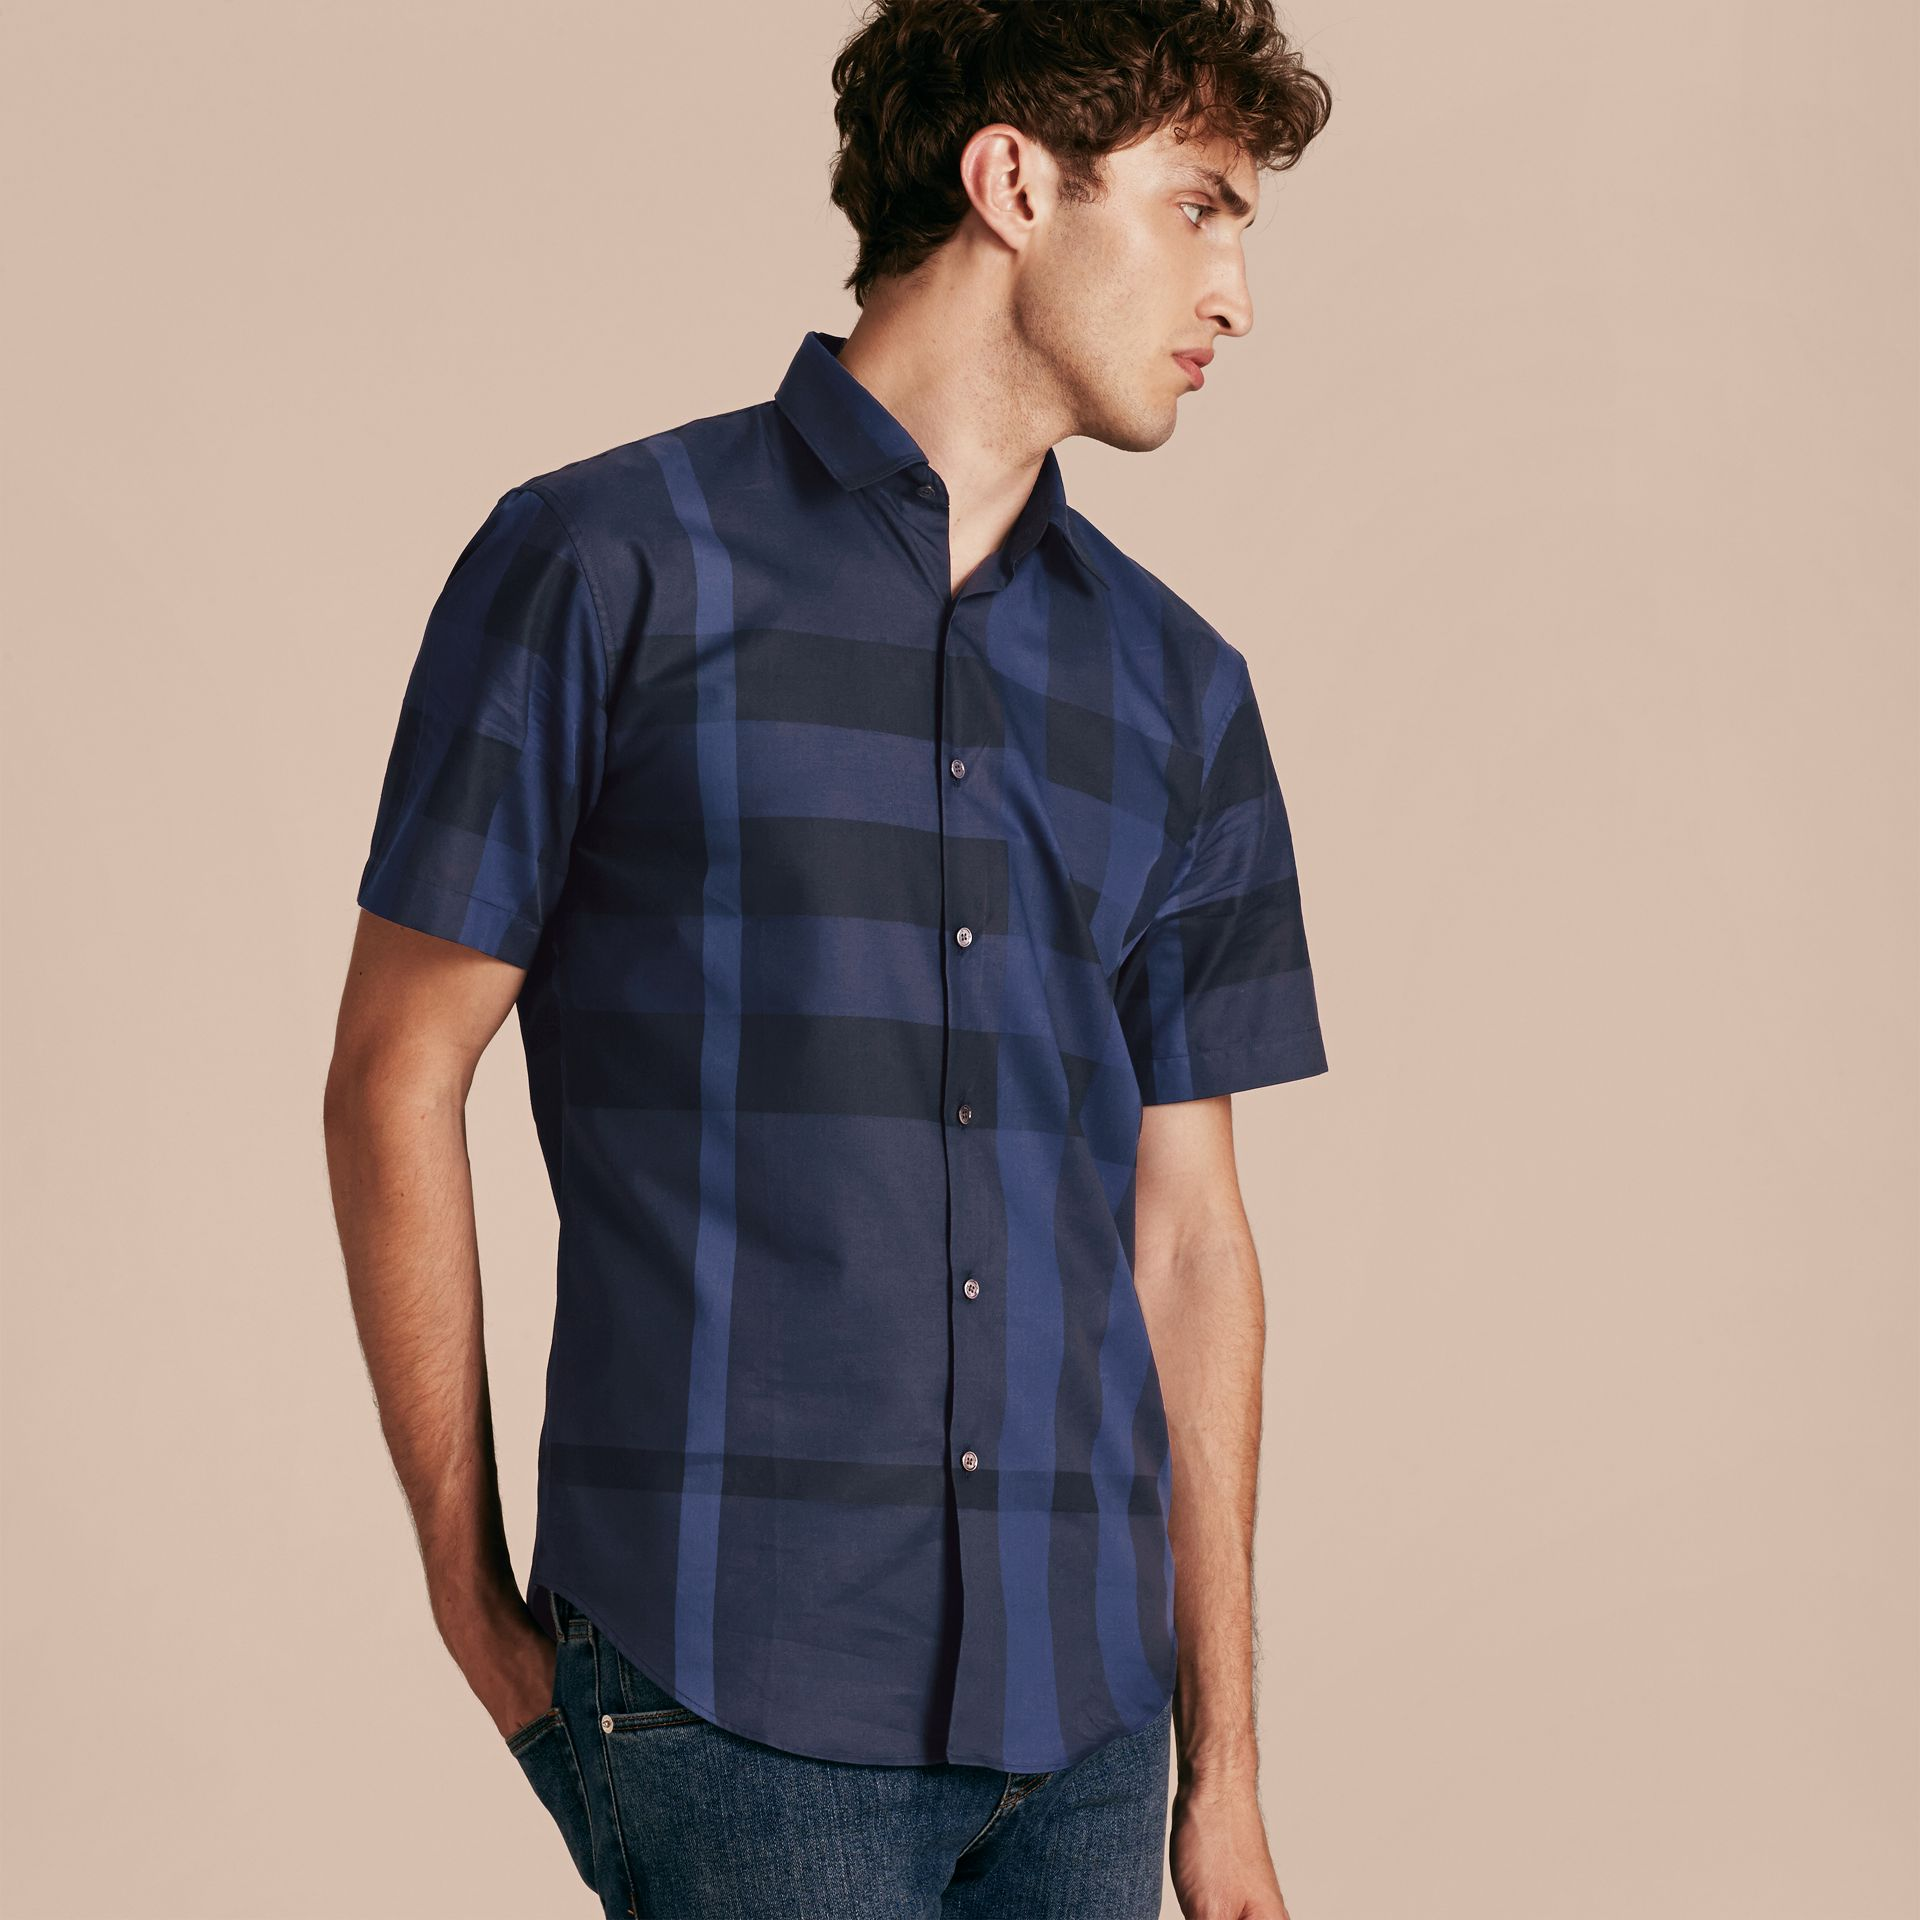 Navy Short-sleeved Check Cotton Shirt Navy - gallery image 6